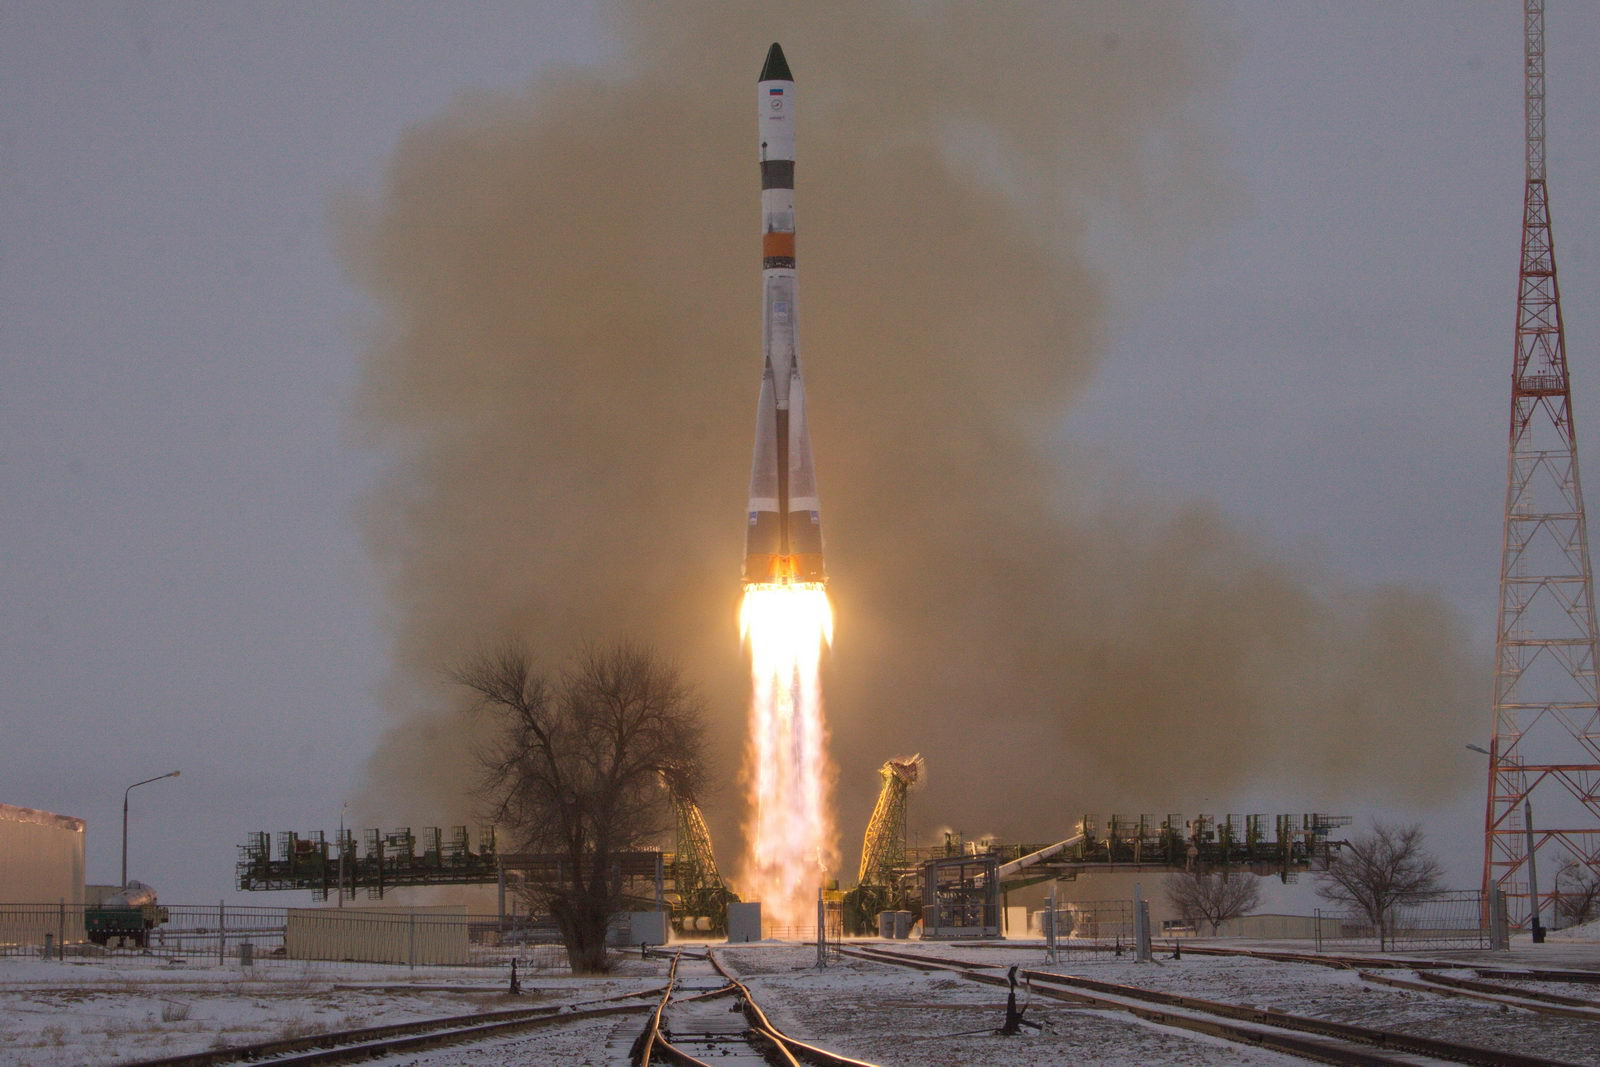 A Soyuz-2.1a rocket sent the Progress MS-01 spacecraft toward the International Space Station with a successful launch Monday. Credit: Roscosmos